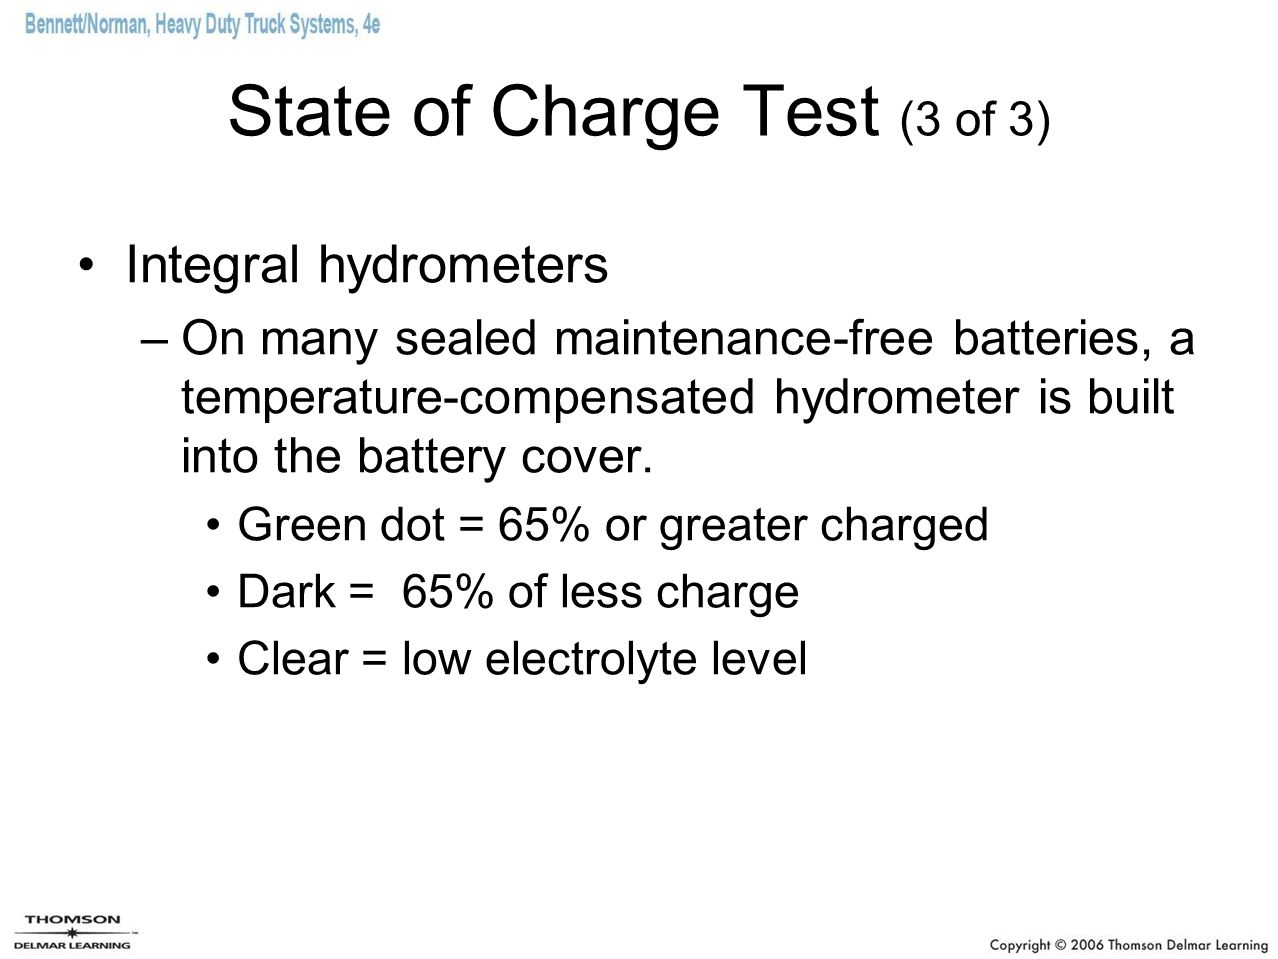 State of Charge Test (3 of 3)